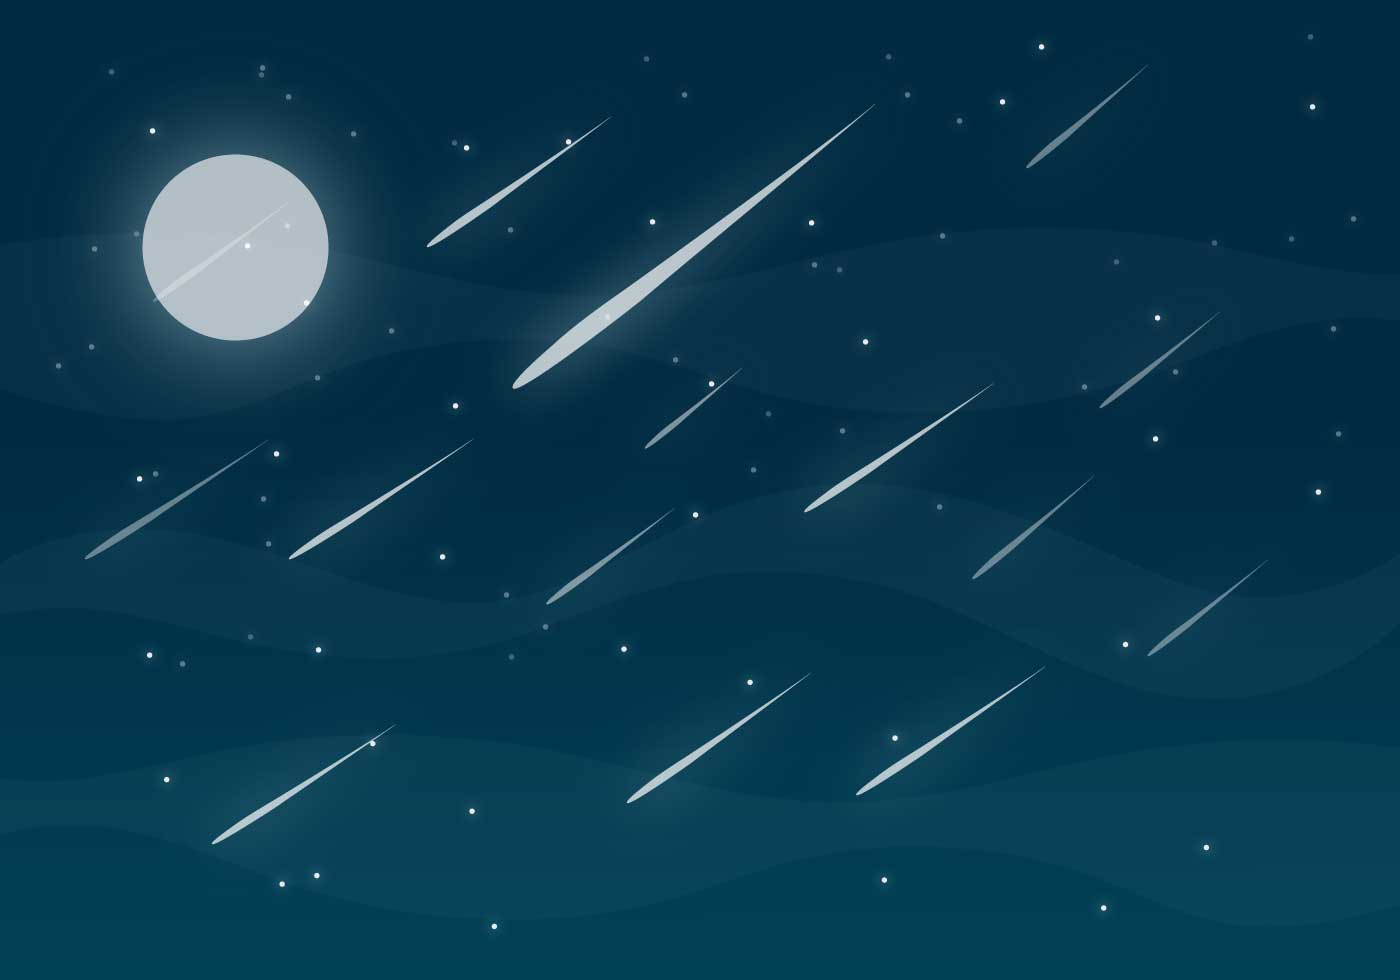 Animated Butterfly Wallpaper Meteor Shower Free Vector Download Free Vector Art